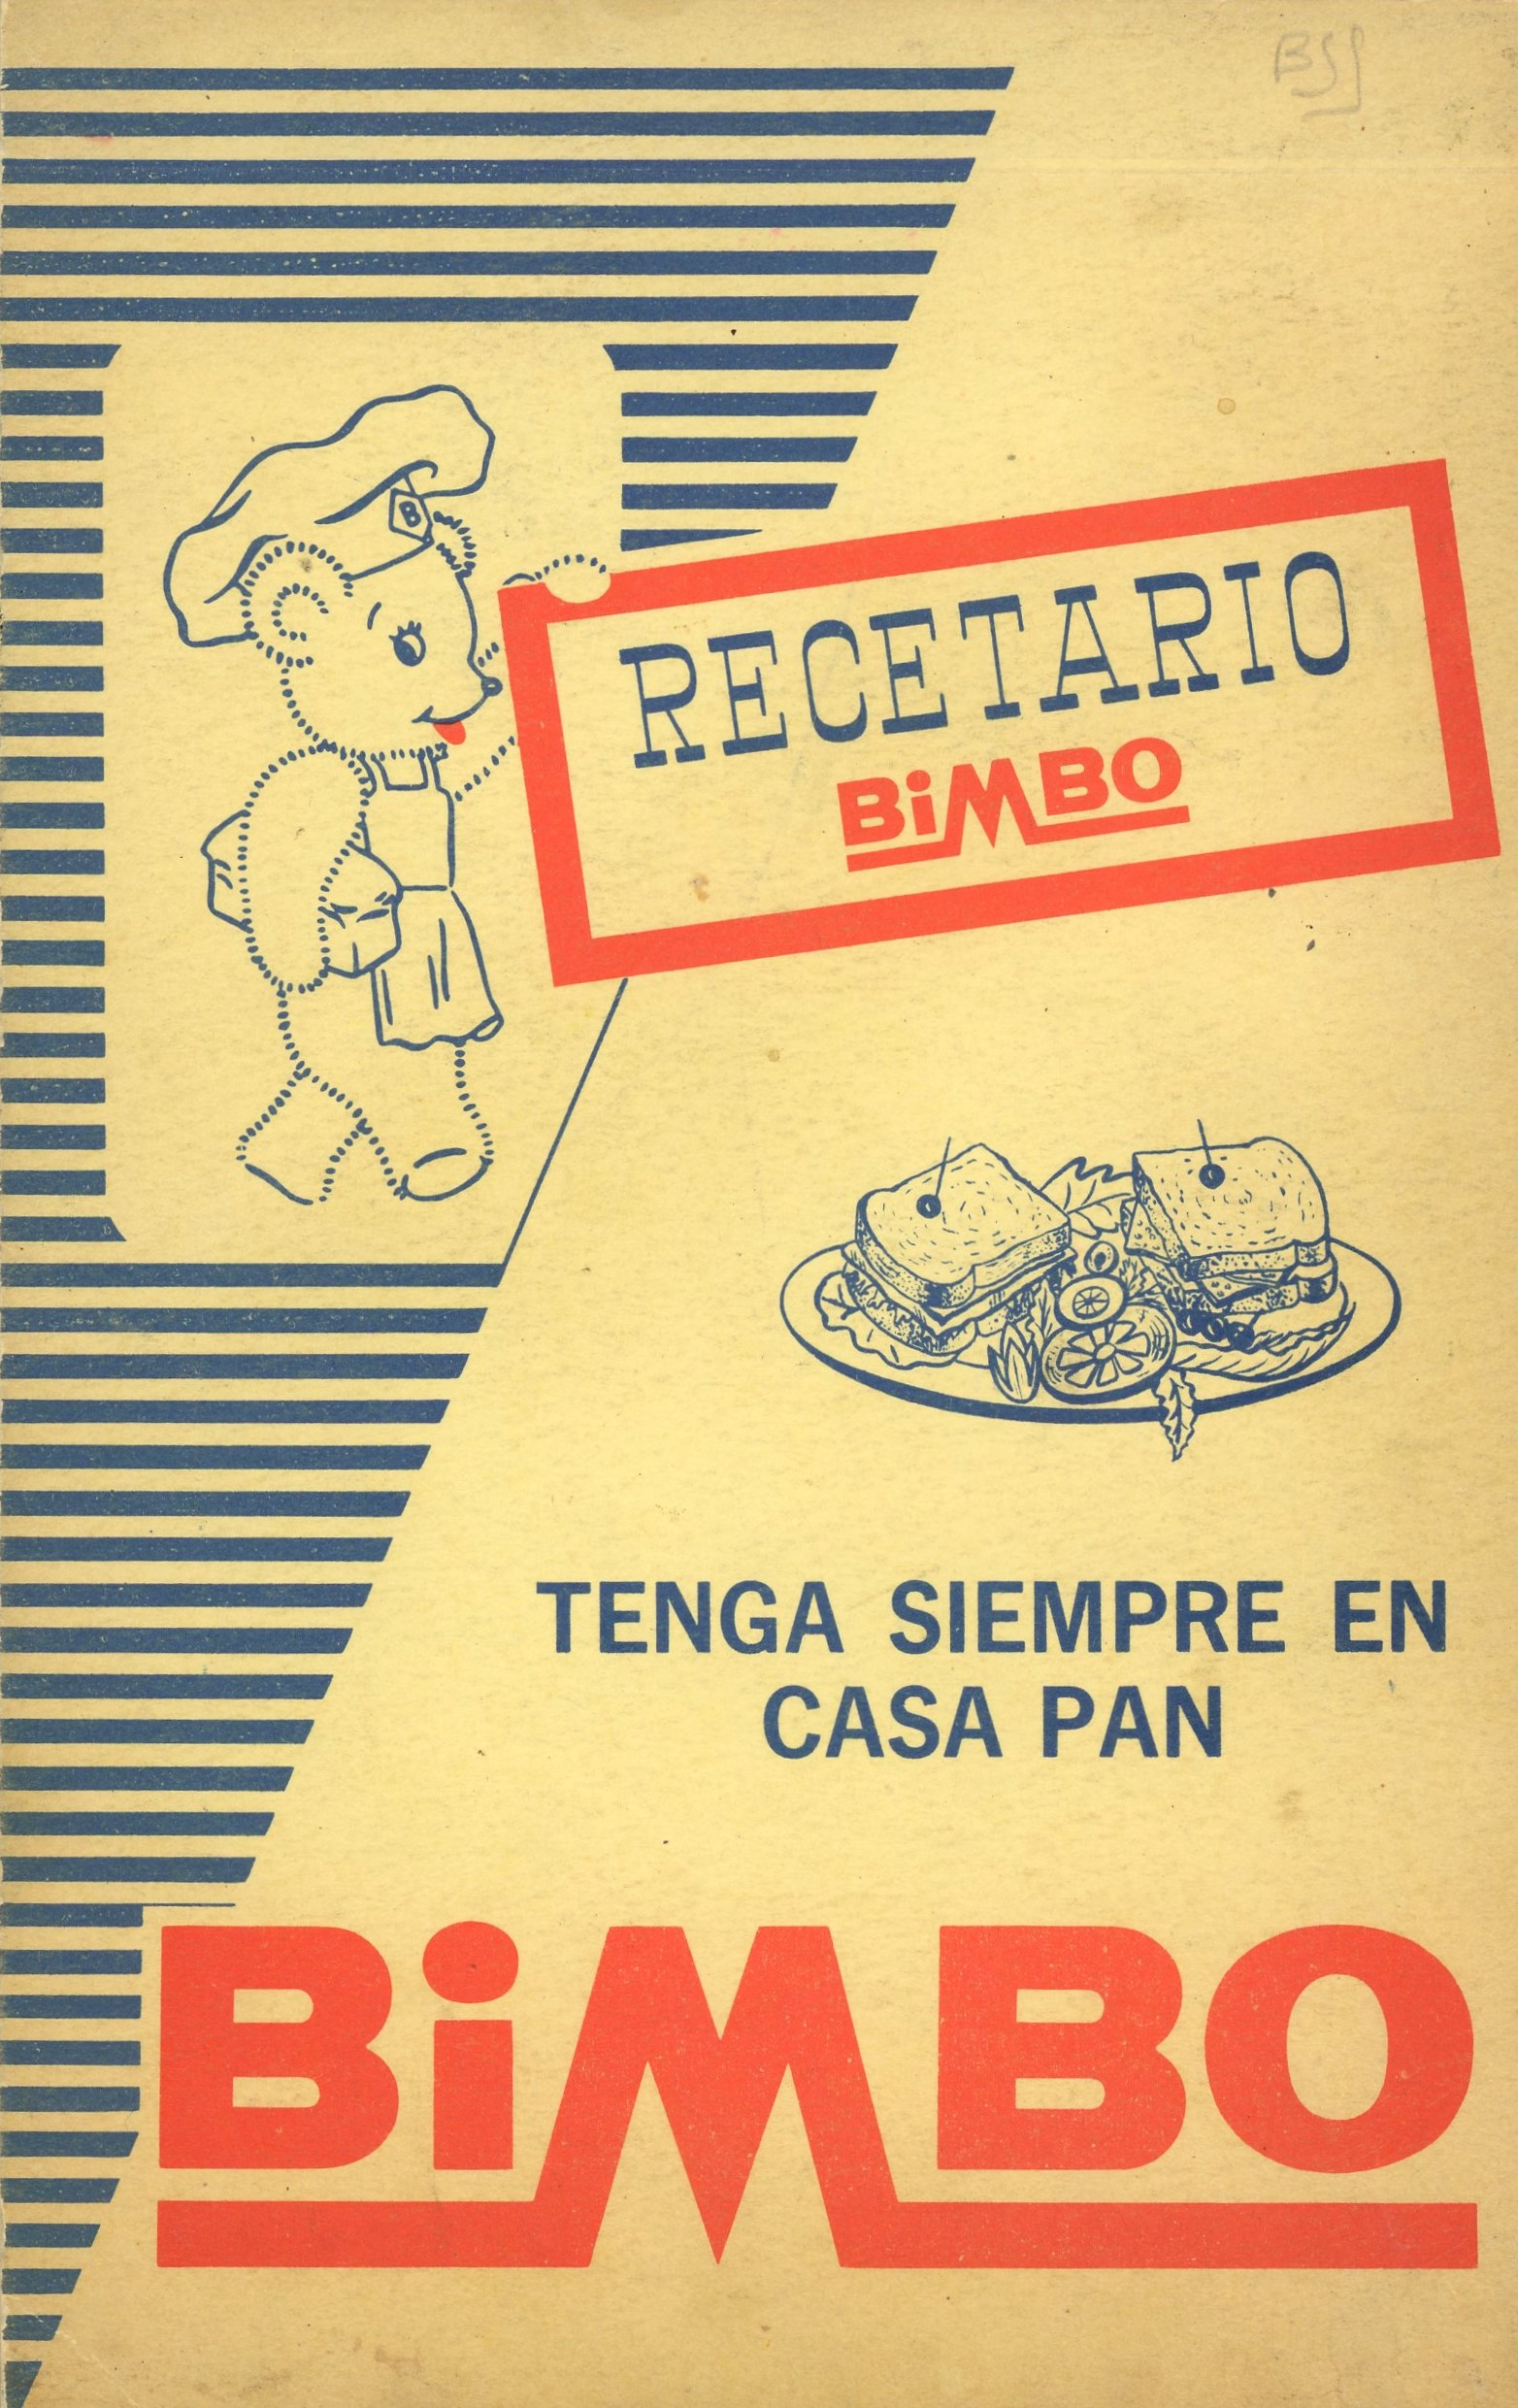 Cover of Recetario Bimbo featuring cartoon bear chef and a plate of sandwiches and salad